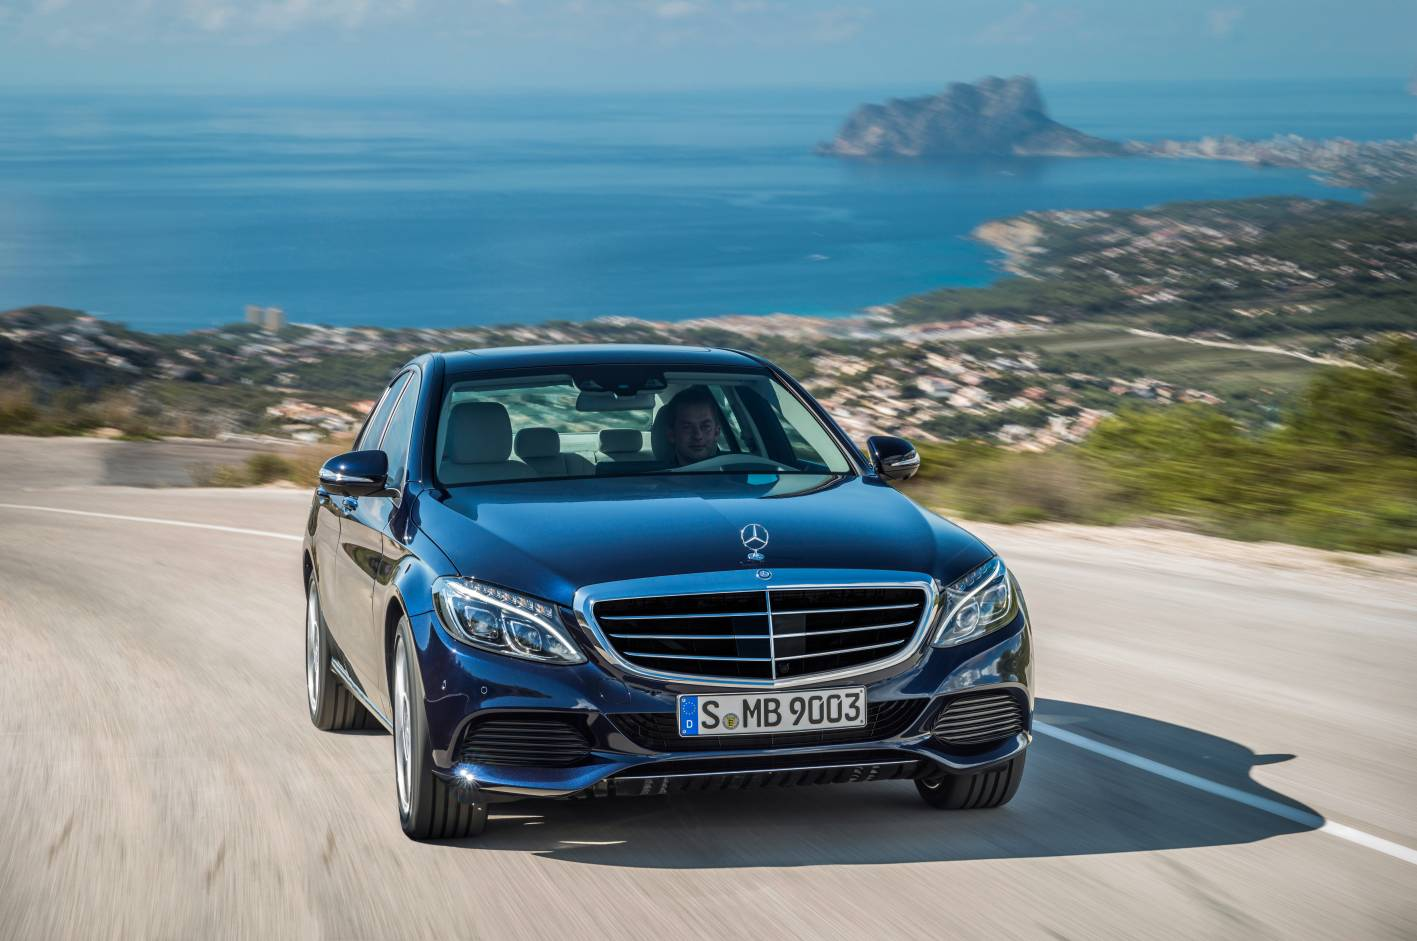 Poverty-pack Mercedes-Benzes aren't good value; yawn factor - infinity